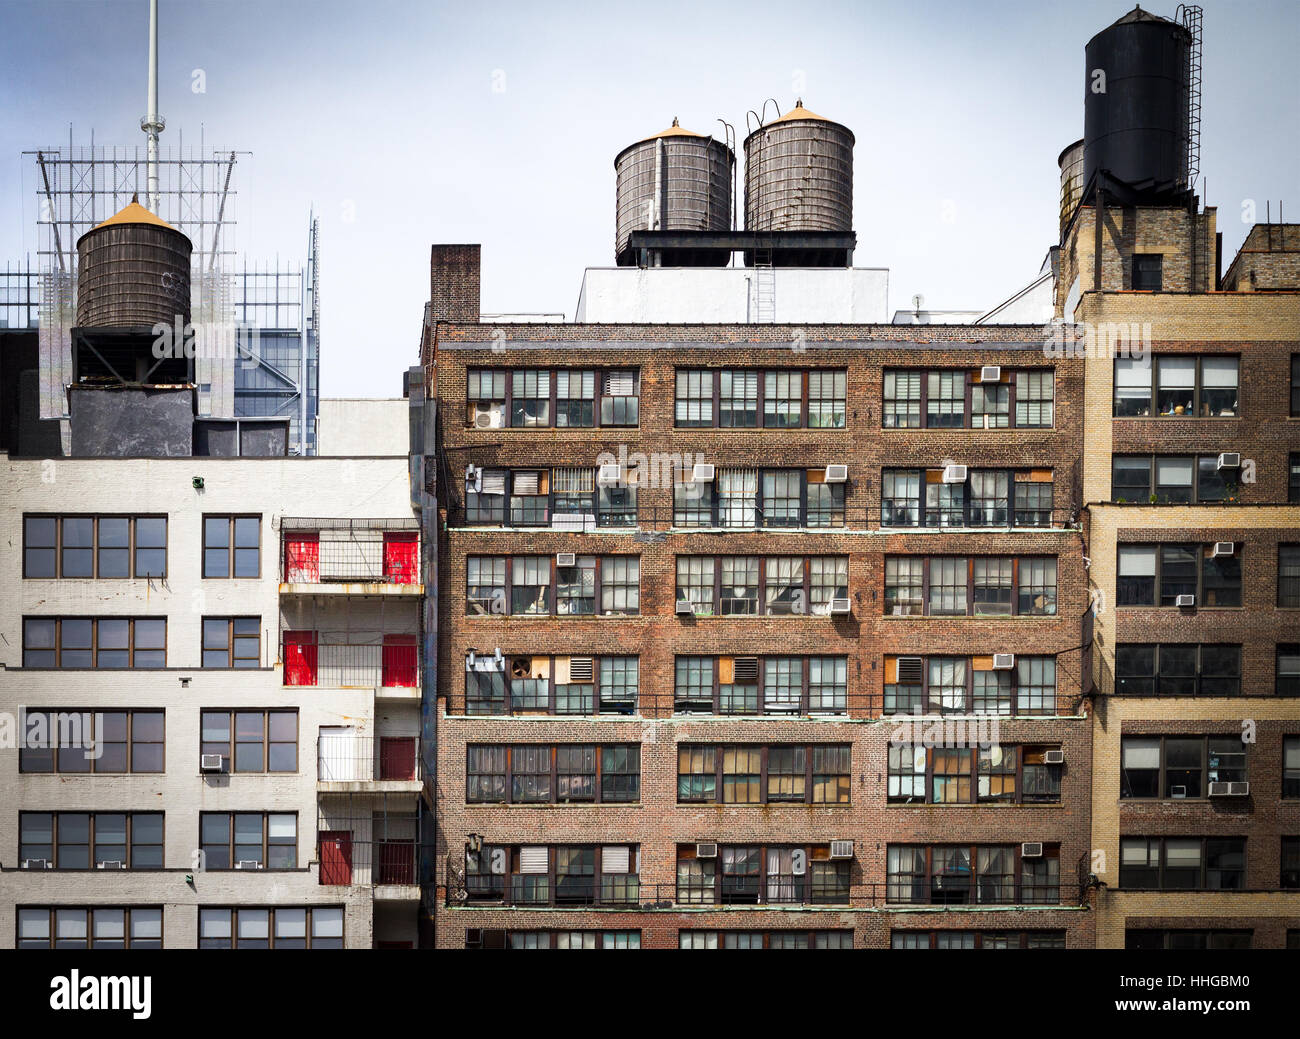 city building windows. Old Vintage Apartment Buildings With Wall Of Windows And Water Towers On  The Roof Tops In Downtown New York City